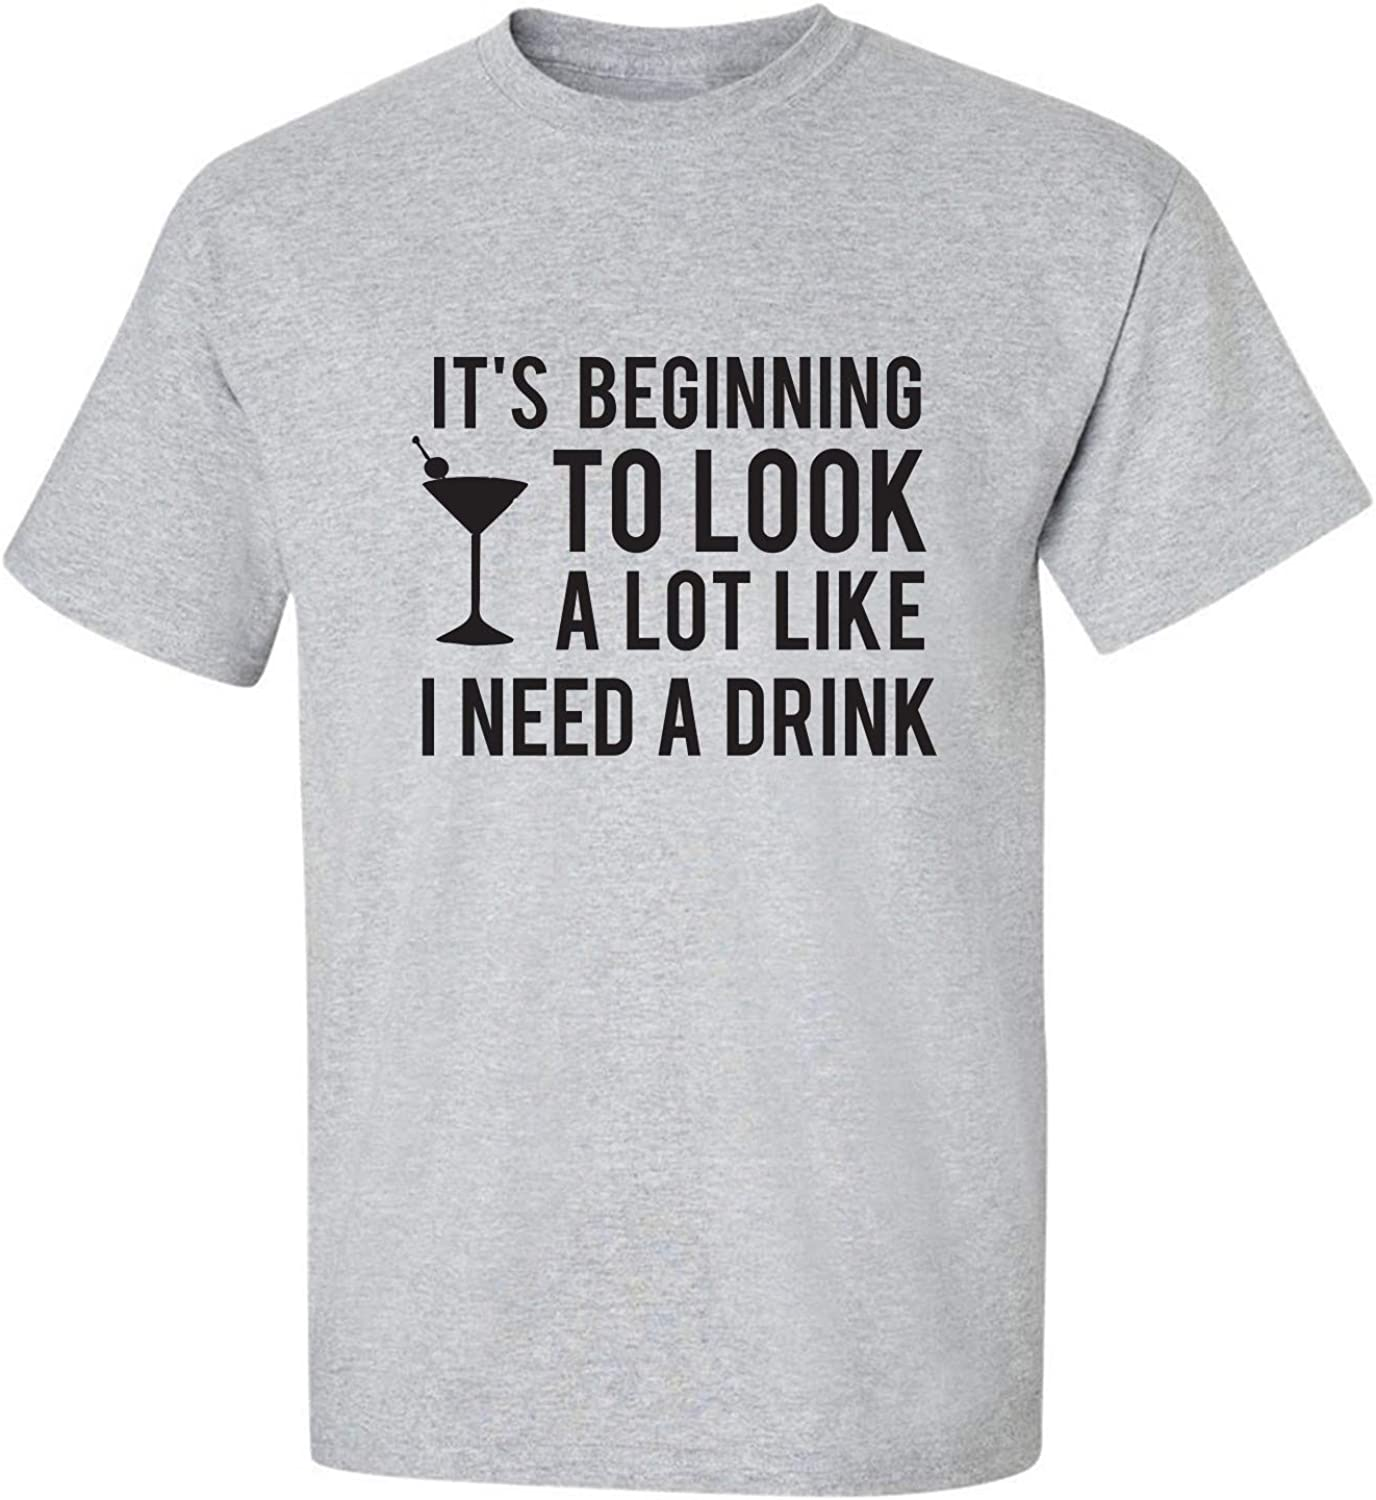 It's Beginning to Look A Lot Like Adult T-Shirt in Sport Grey - XXXX-Large